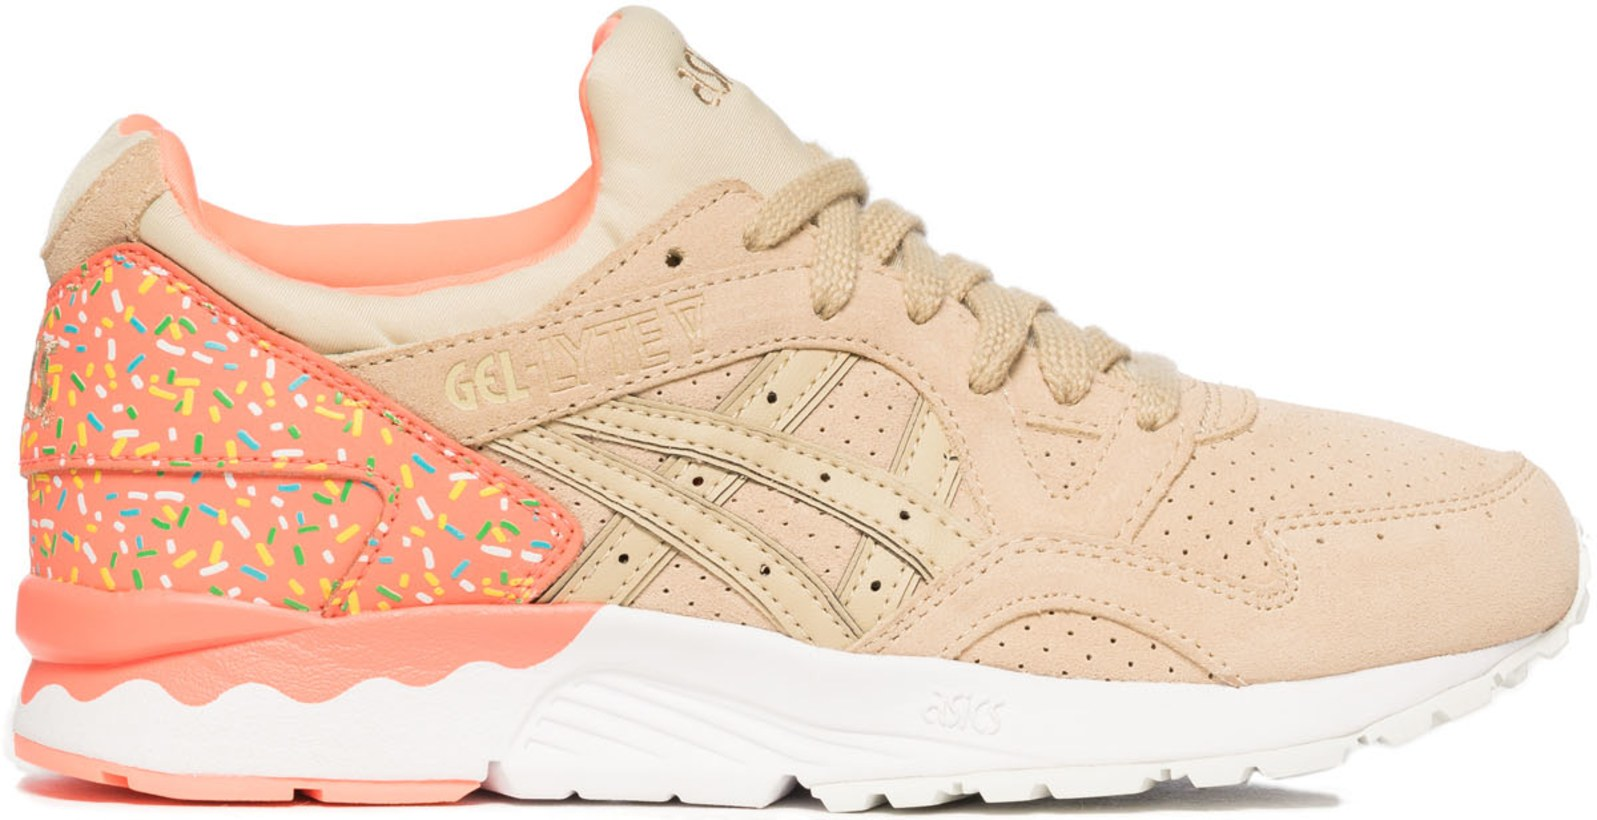 the best attitude b25c3 6ee37 ASICS - Gel-Lyte V - Taos Taupe/Taos Taupe